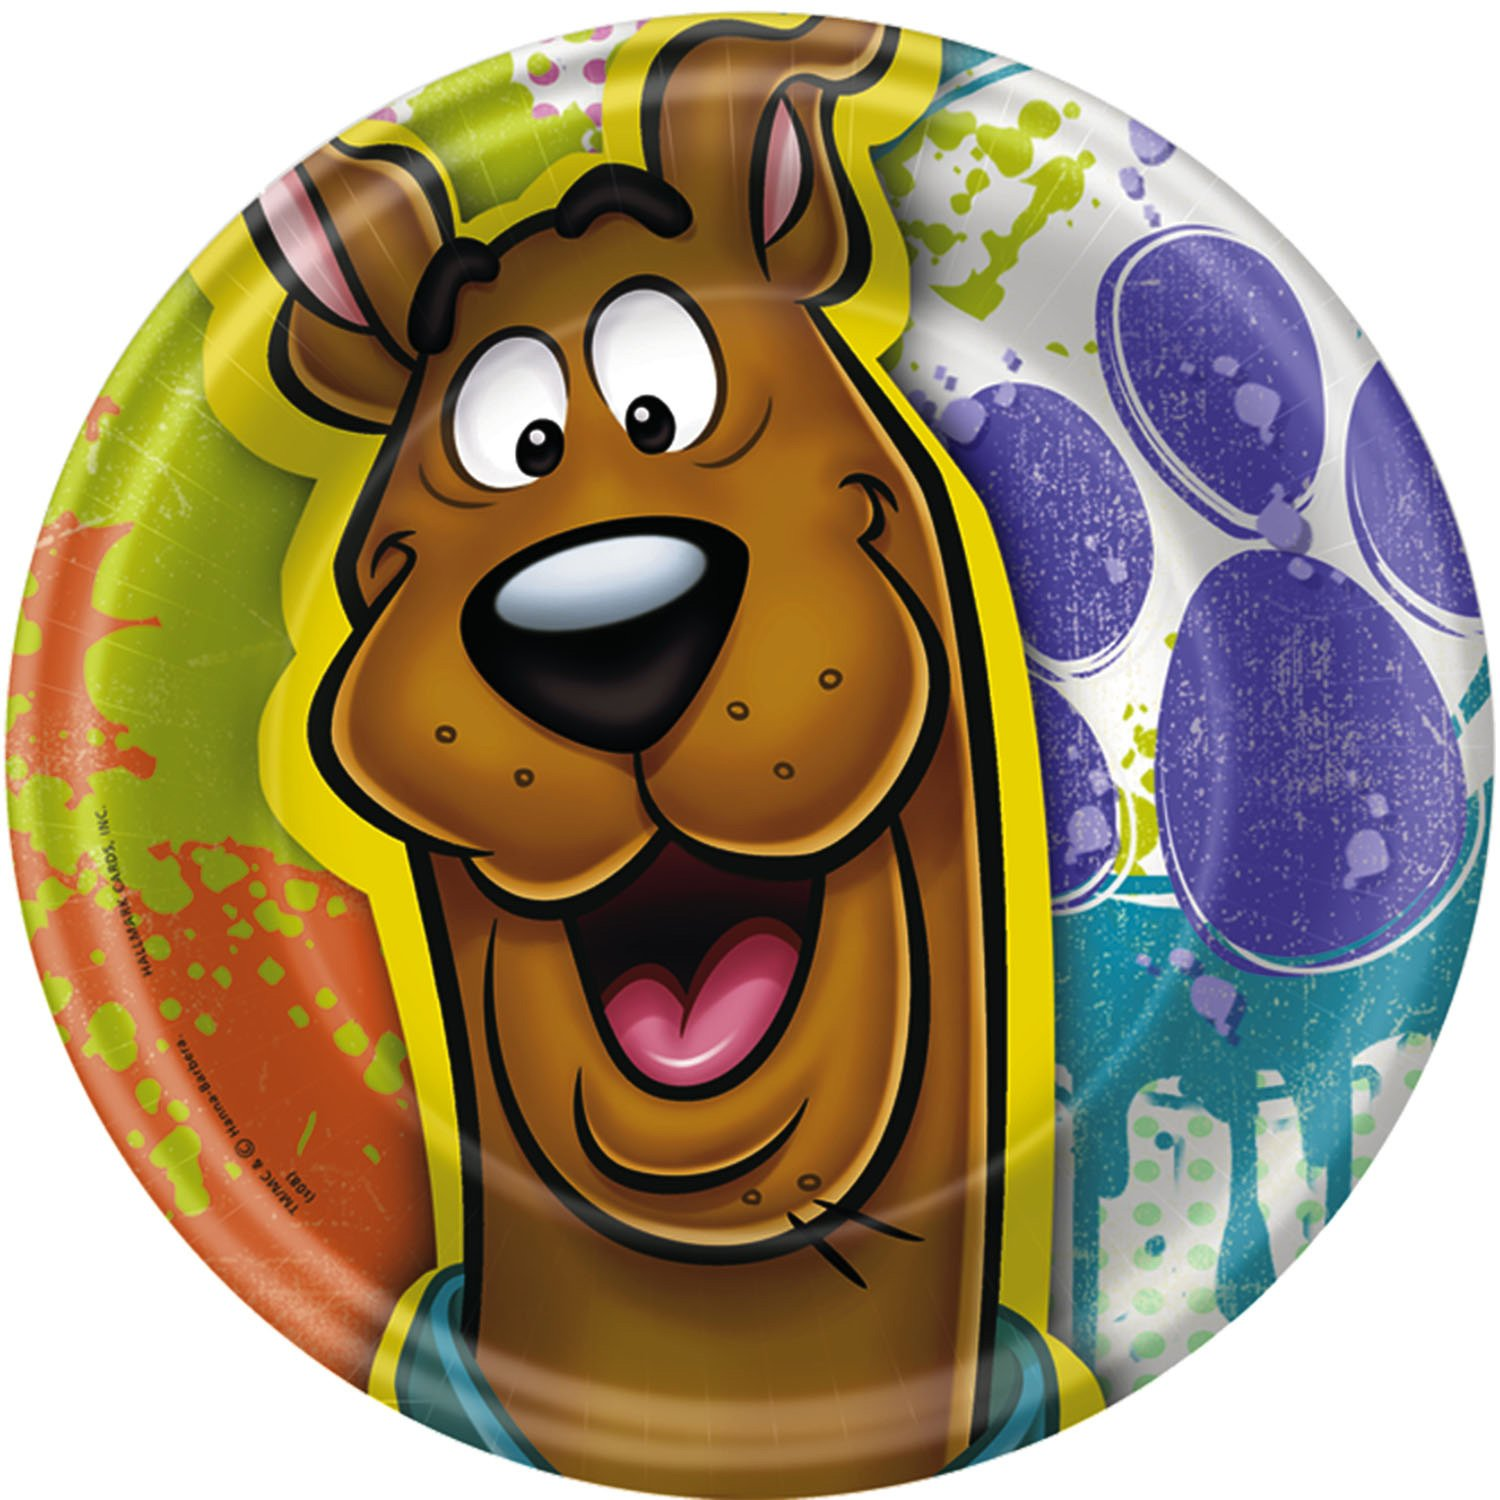 Scooby doo full episodes download